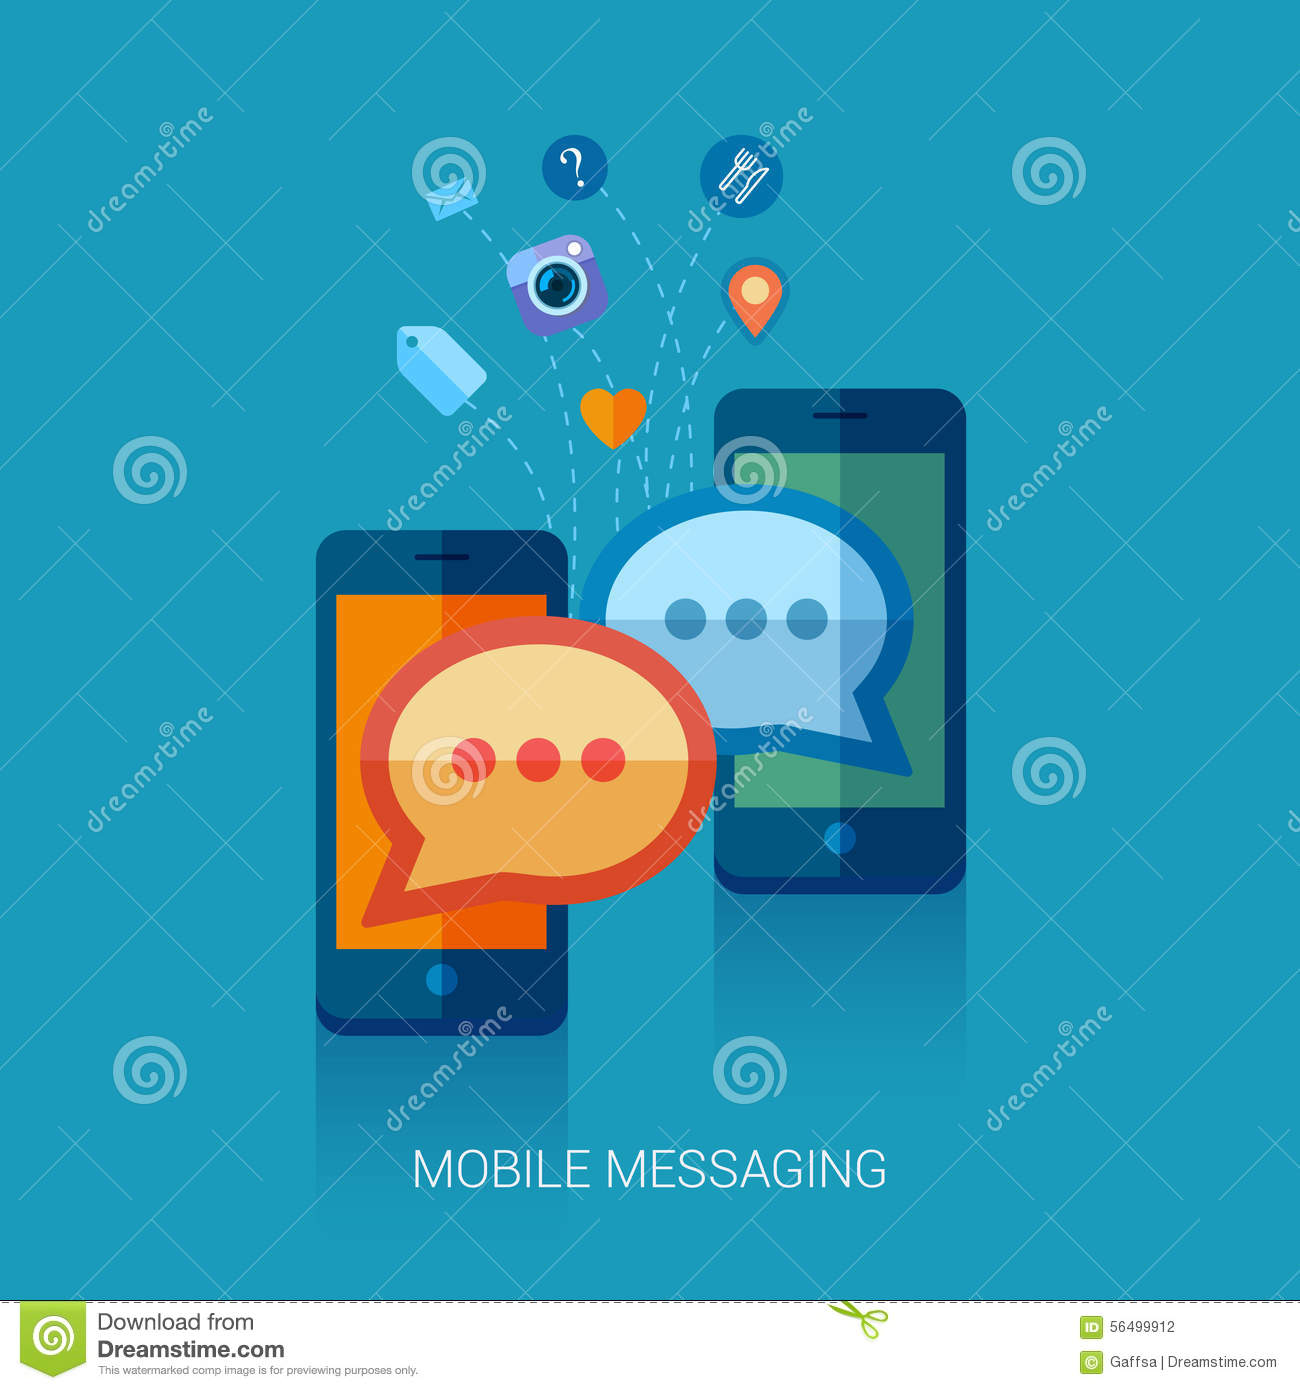 mobile network questionnaire The first global network was established using electrical telegraphy and global the internet and mobile communication networks have made possible entirely new.